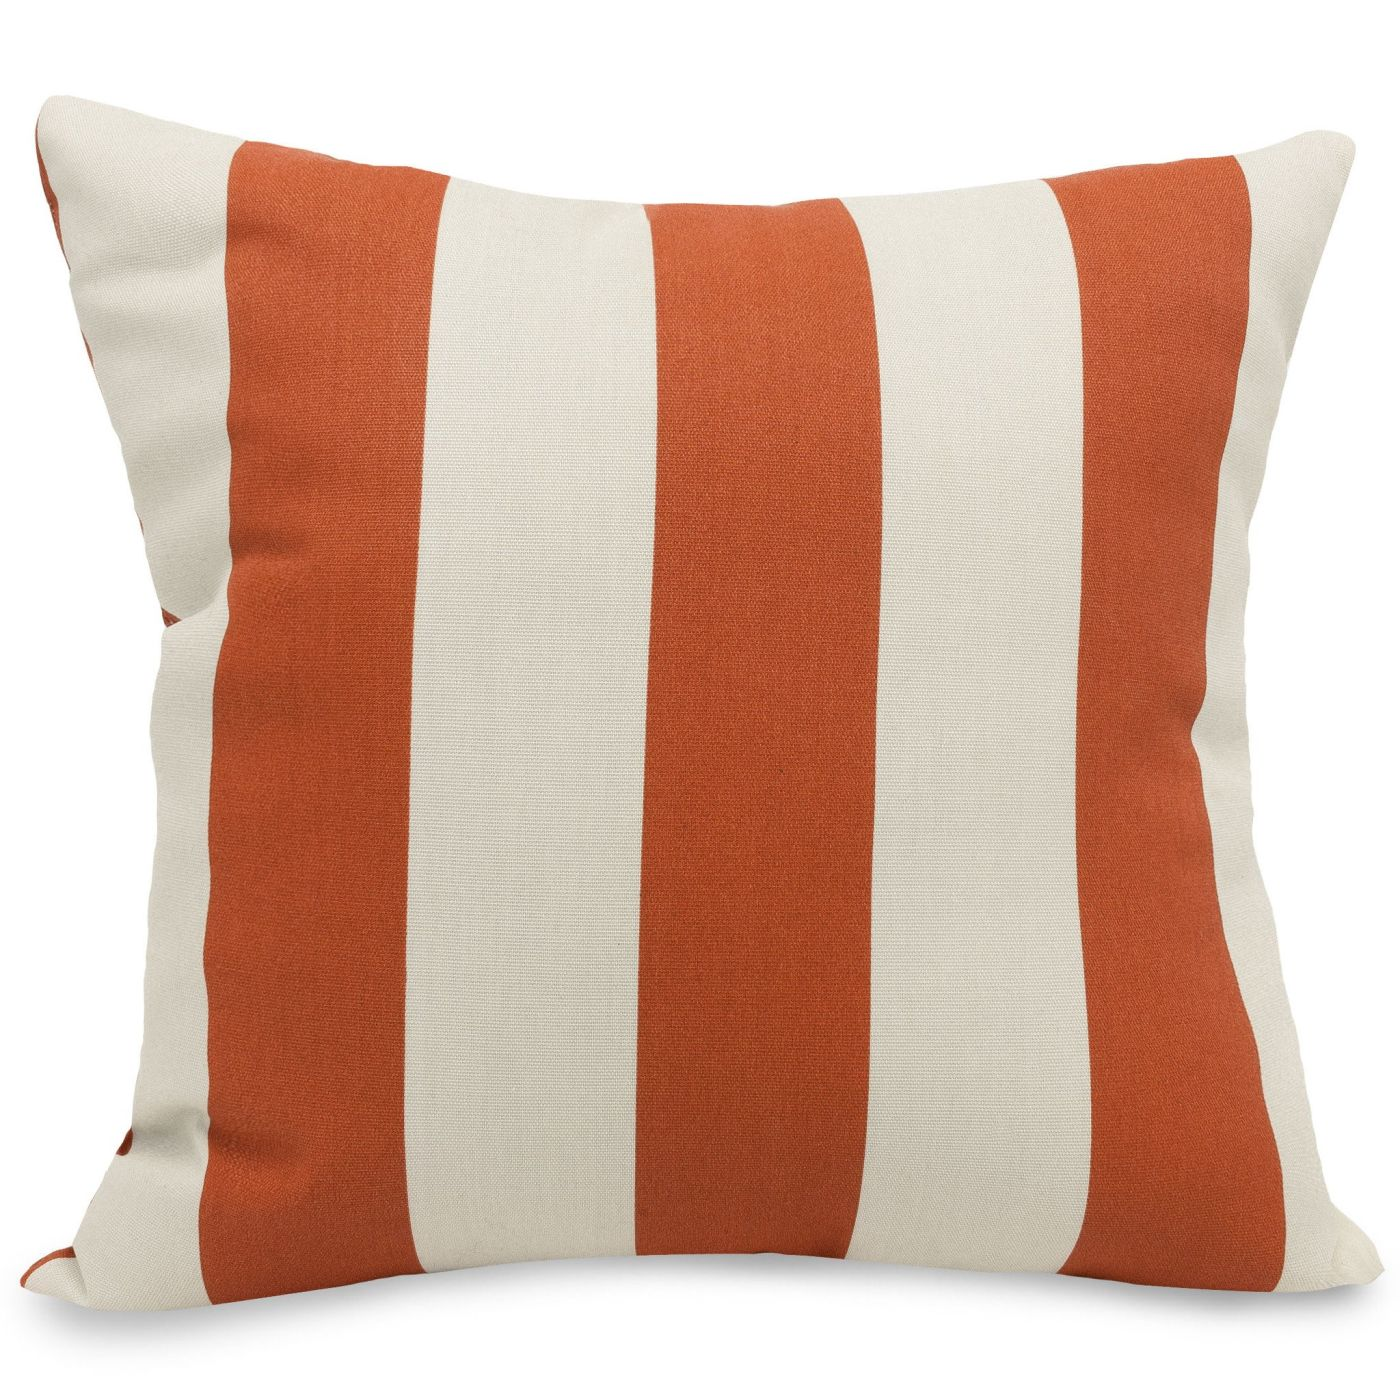 Large Orange Floor Pillows : Majestic Home Burnt Orange Vertical Stripe Extra Large Pillow 85907220921. Only $47.60 at ...